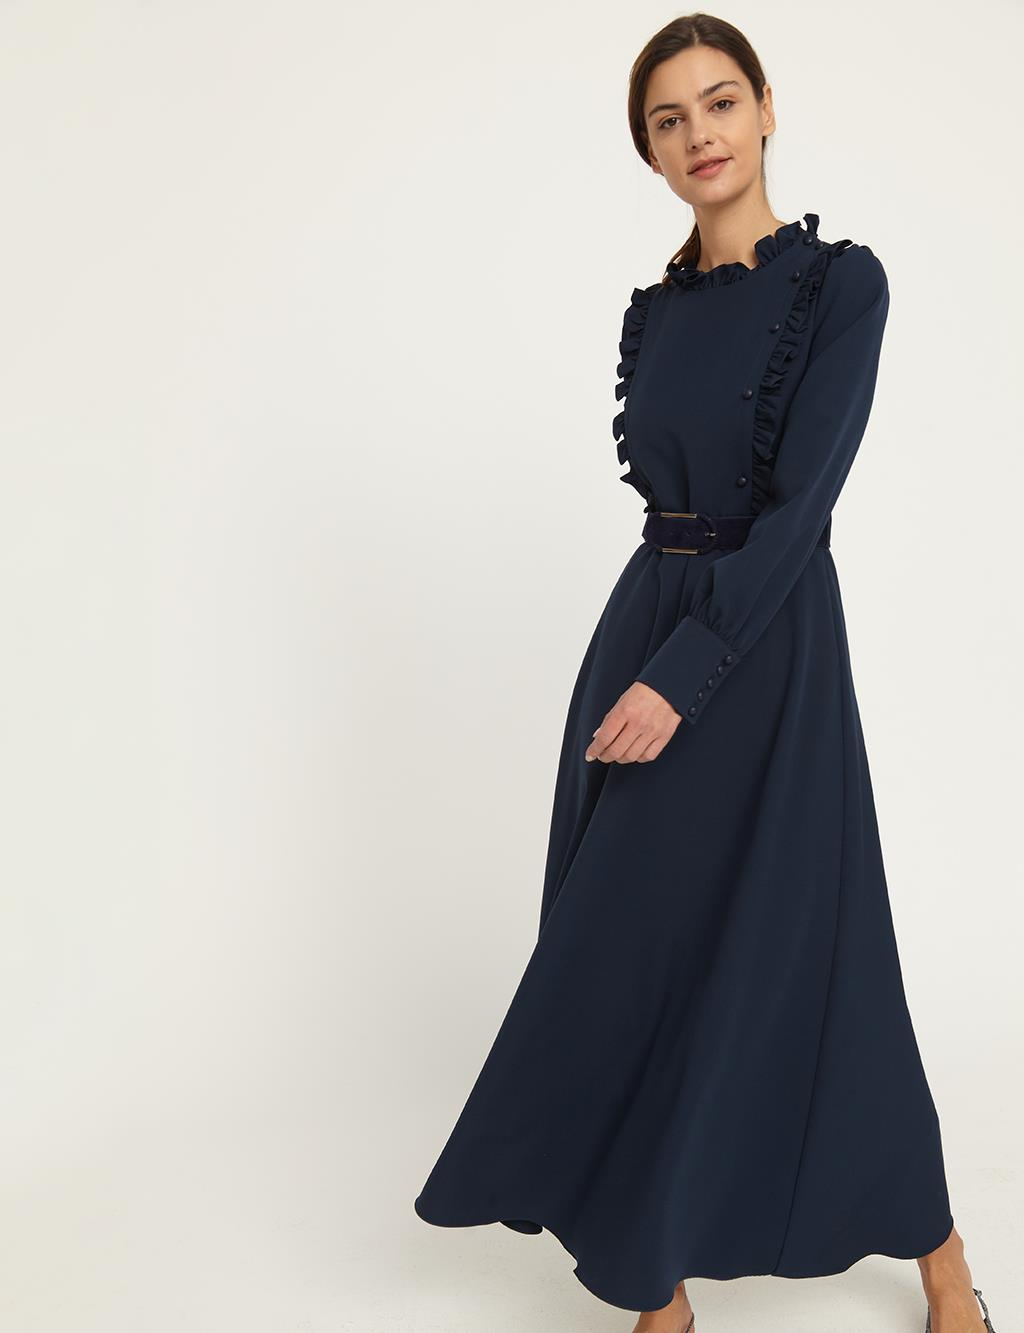 KYR Frilly Long Dress B21 83015 Navy